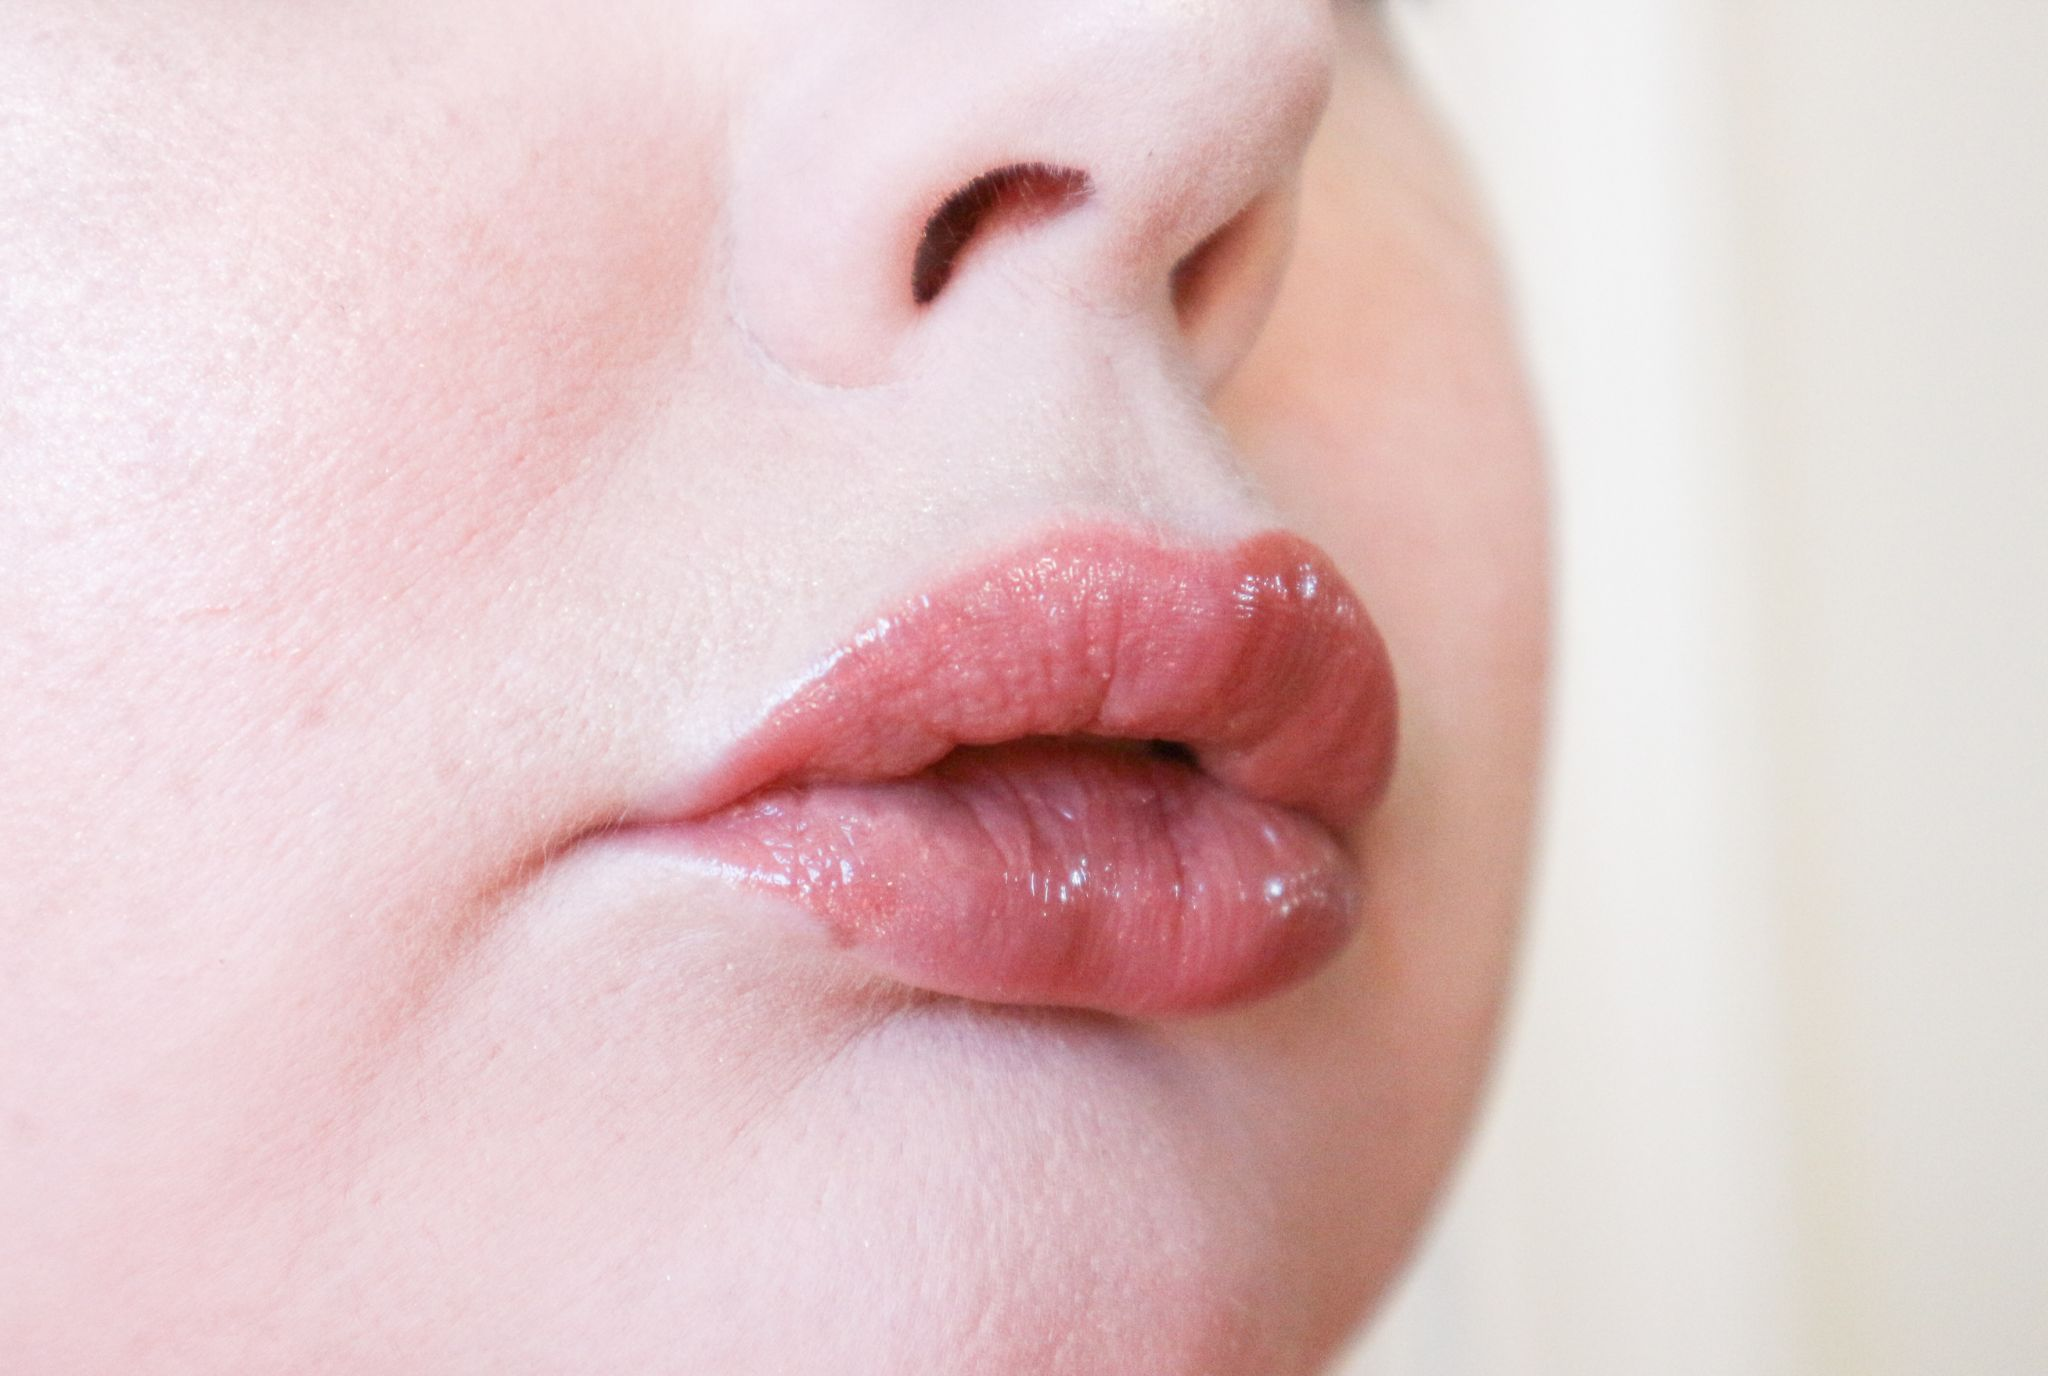 juvederm smile lip fillers image